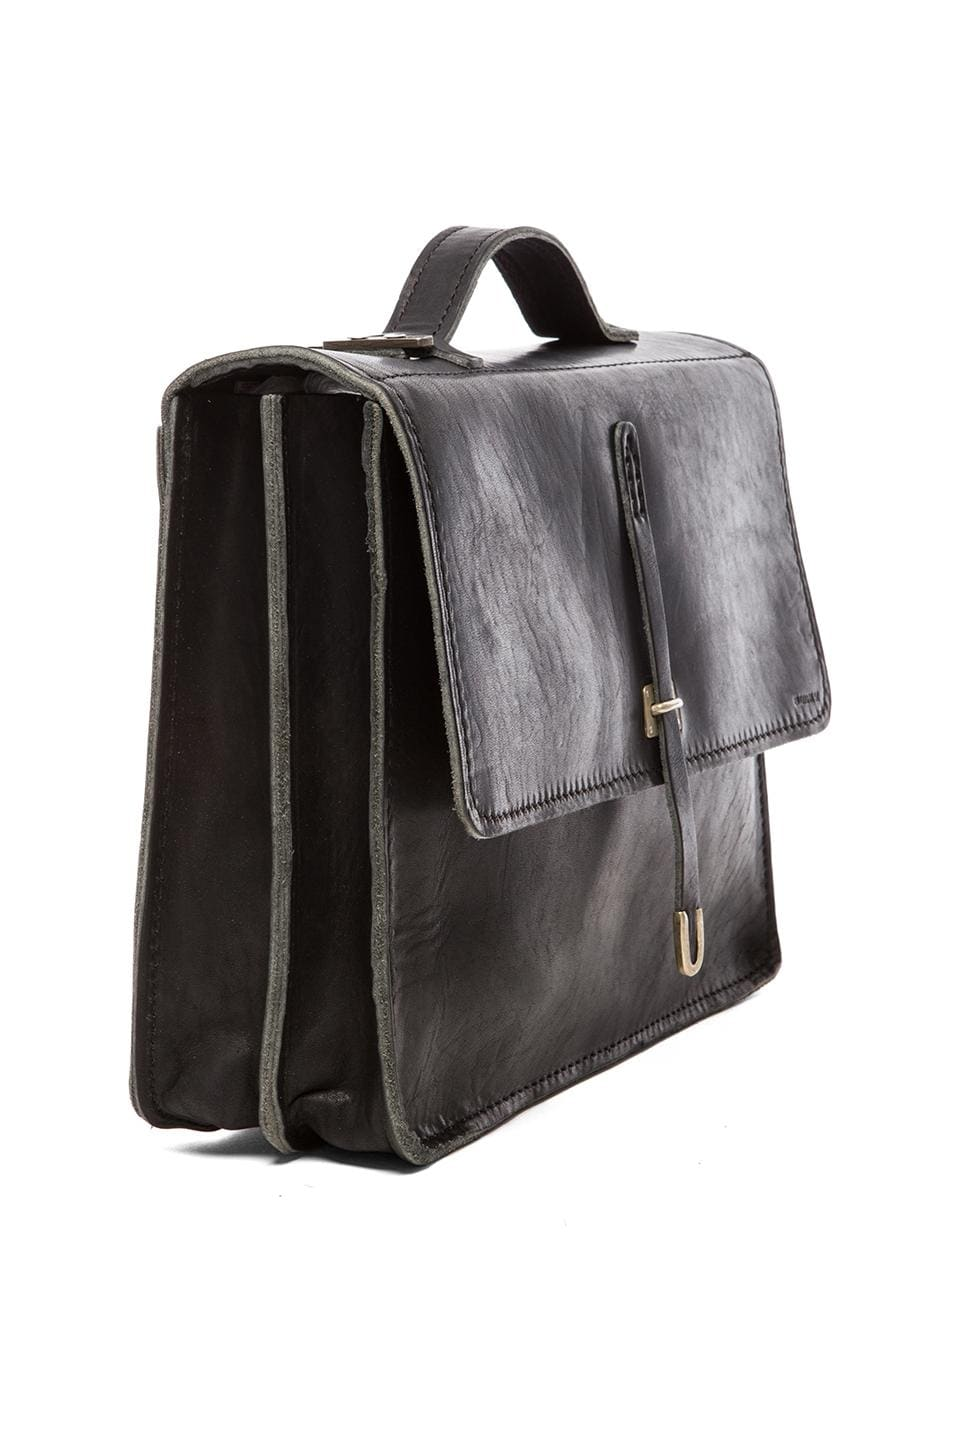 Billykirk No. 236 Schoolboy Satchel in Black